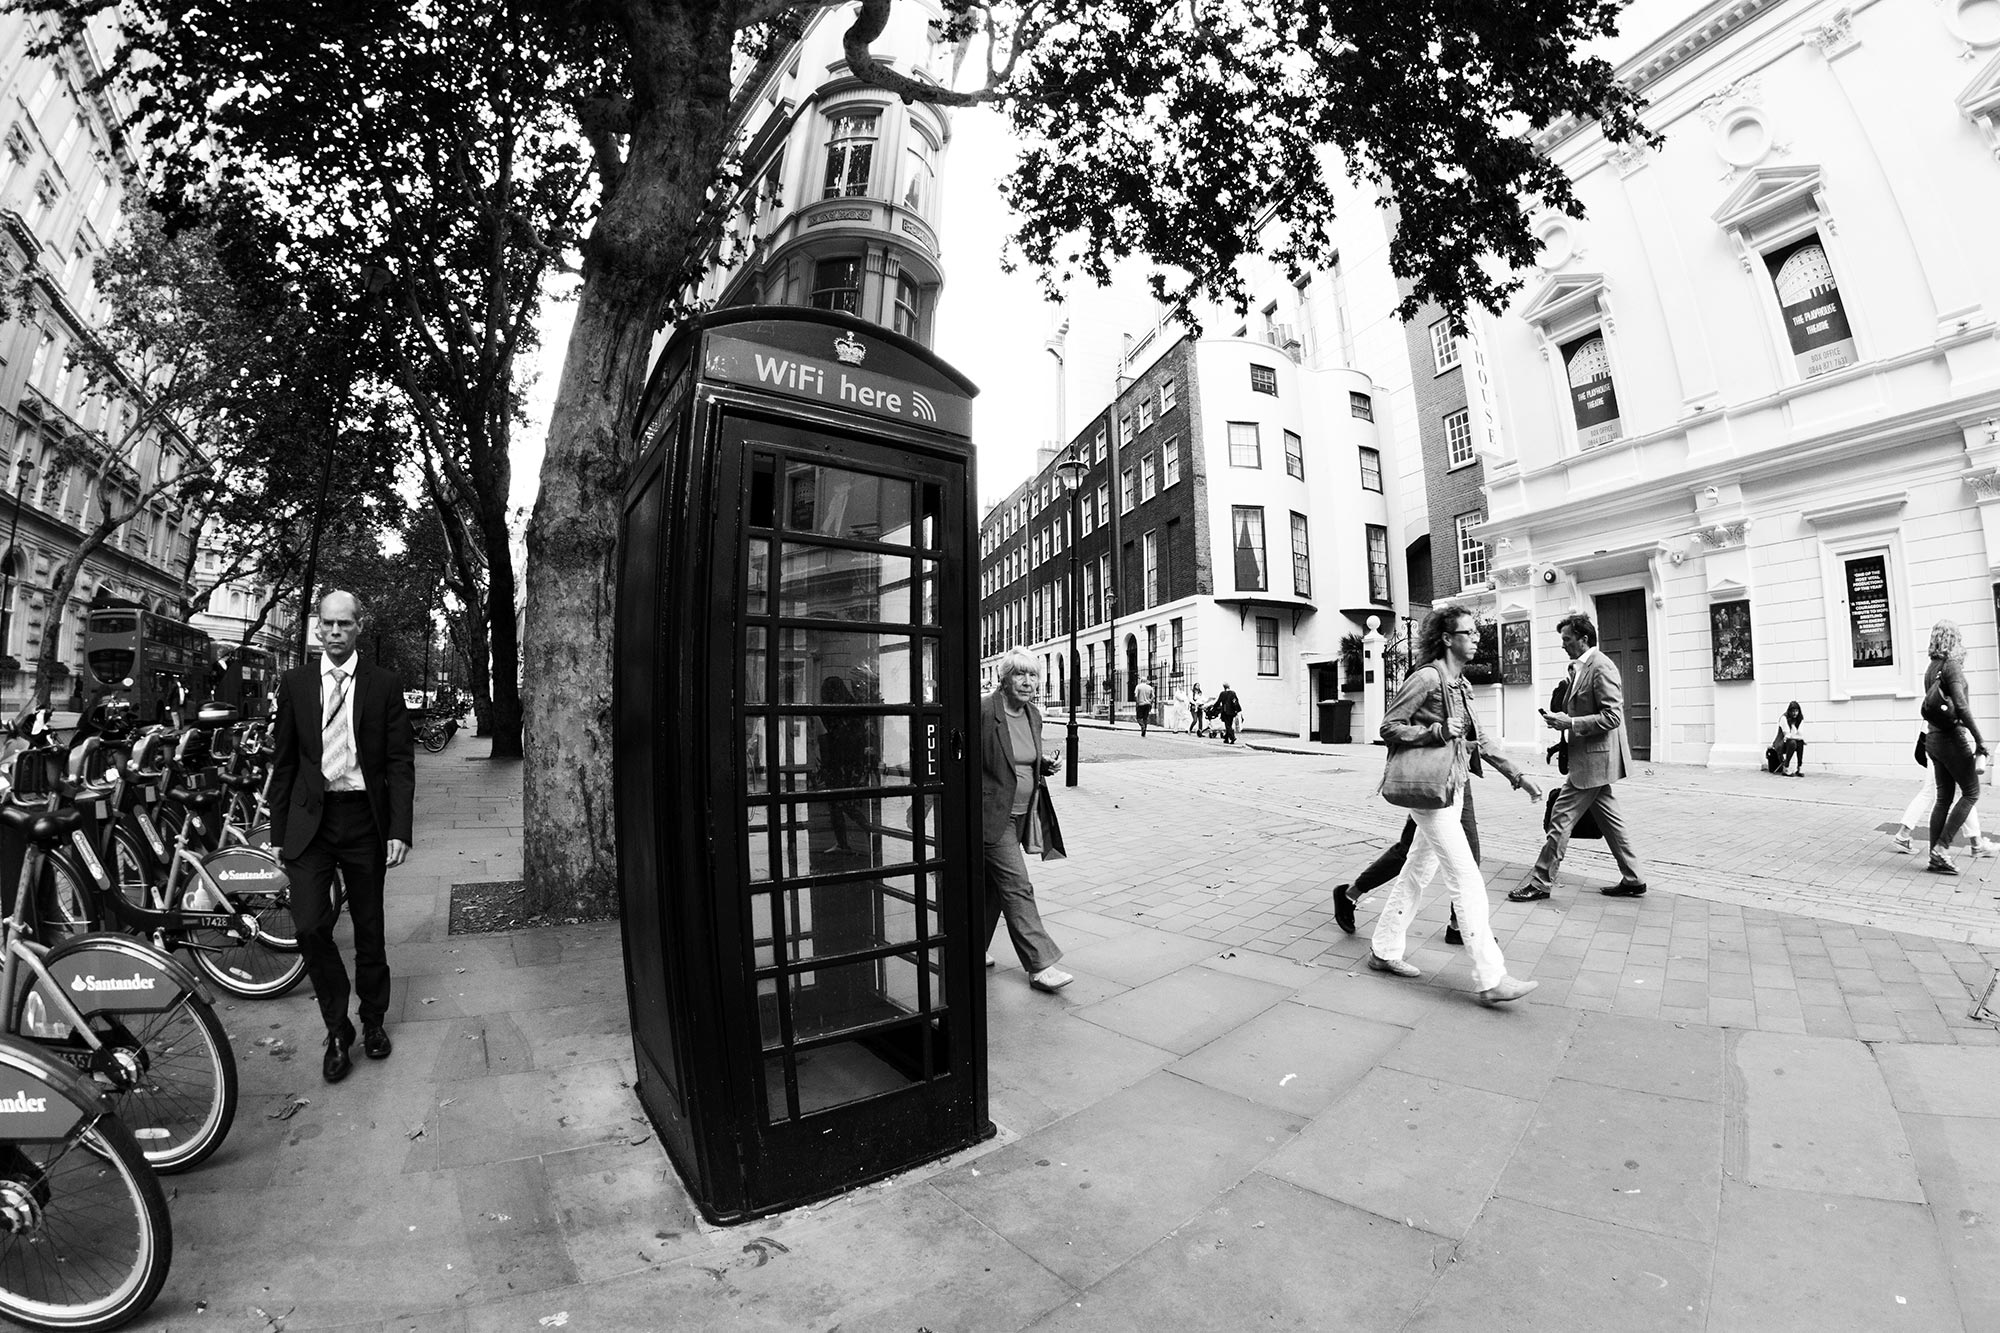 Modern classic: a London phone booth with WiFi